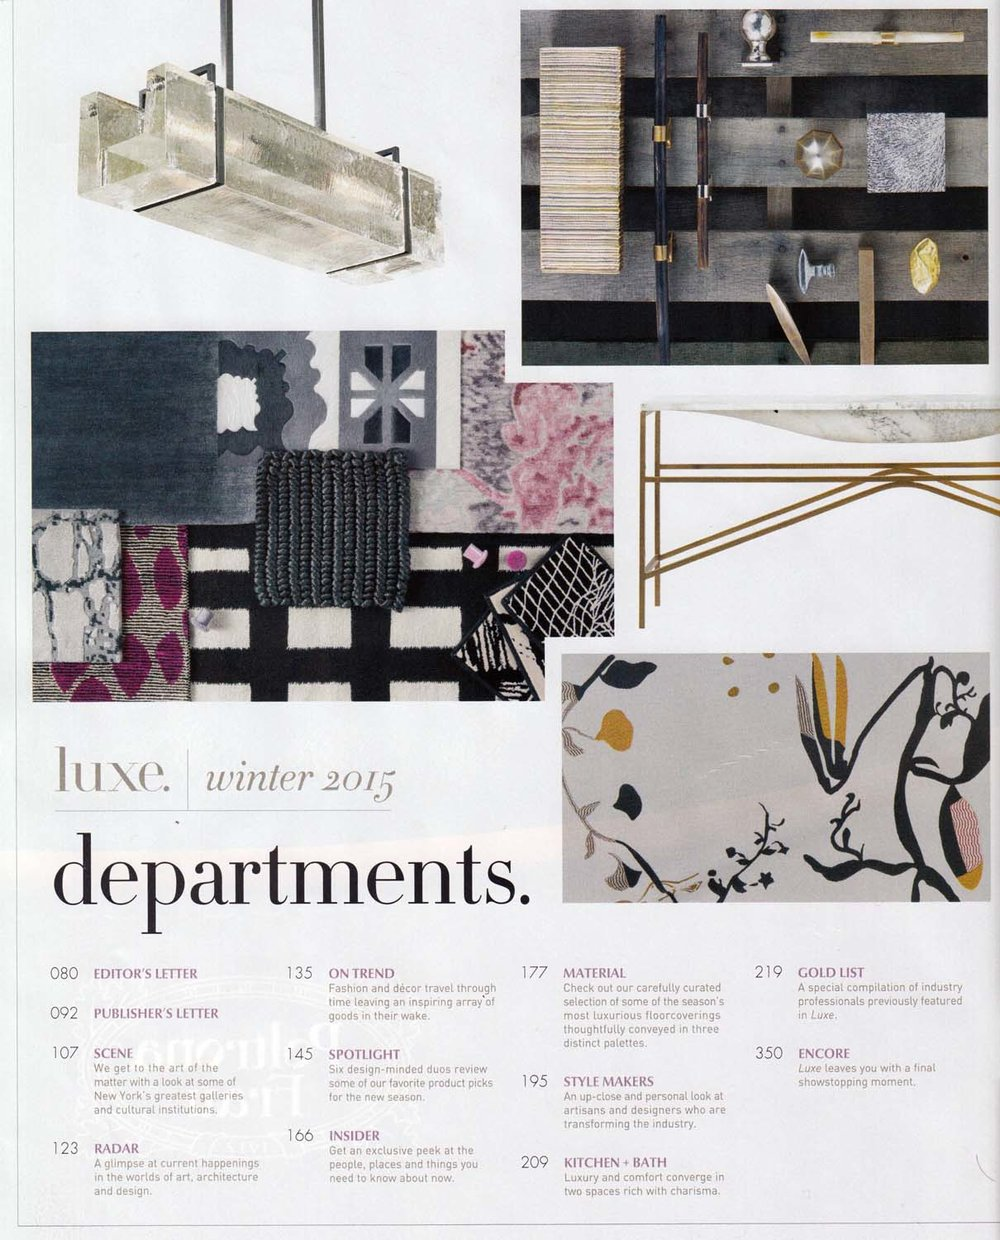 Luxe. Interiors + Design Winter 2015 1.jpg